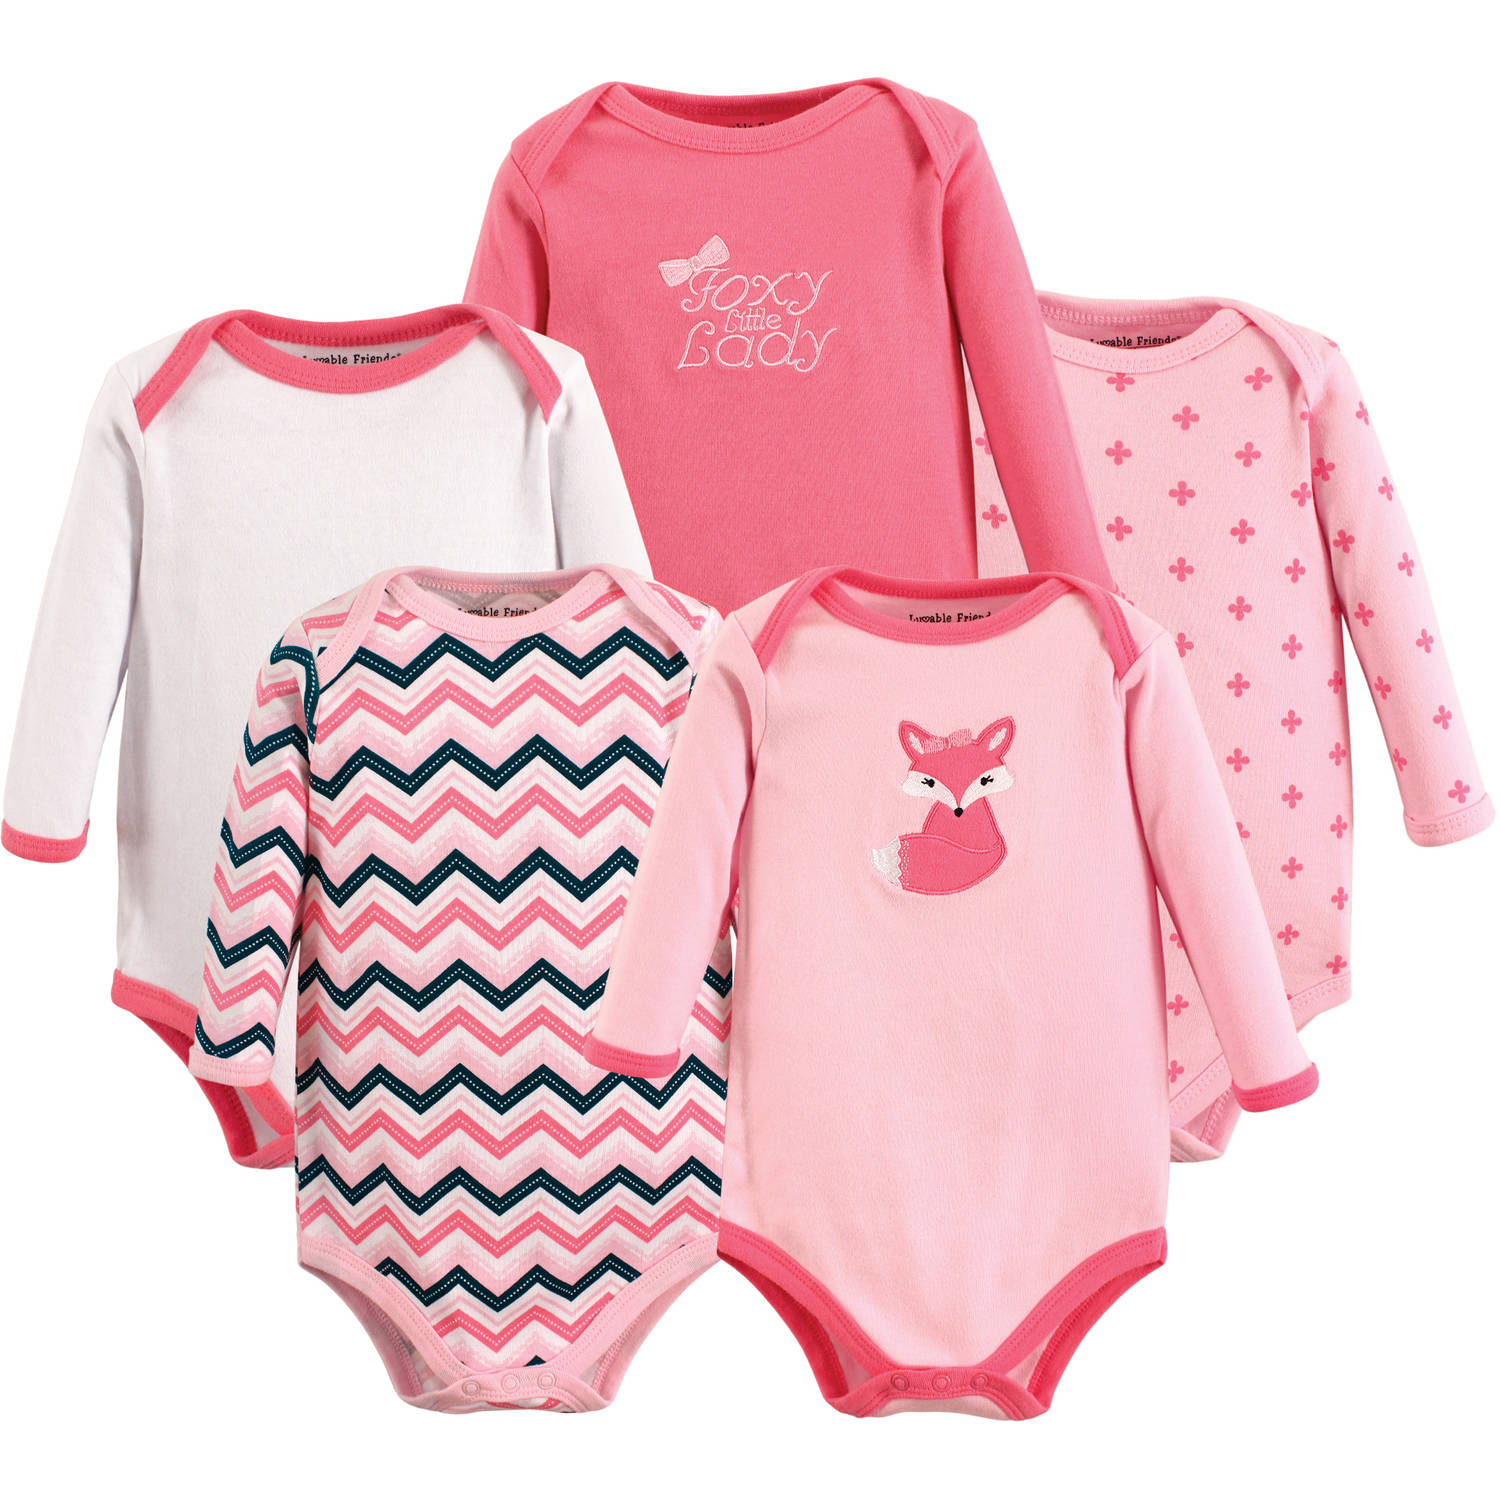 7f9c91ad7 Luvable Friends - Baby Girl Long-Sleeve Bodysuits